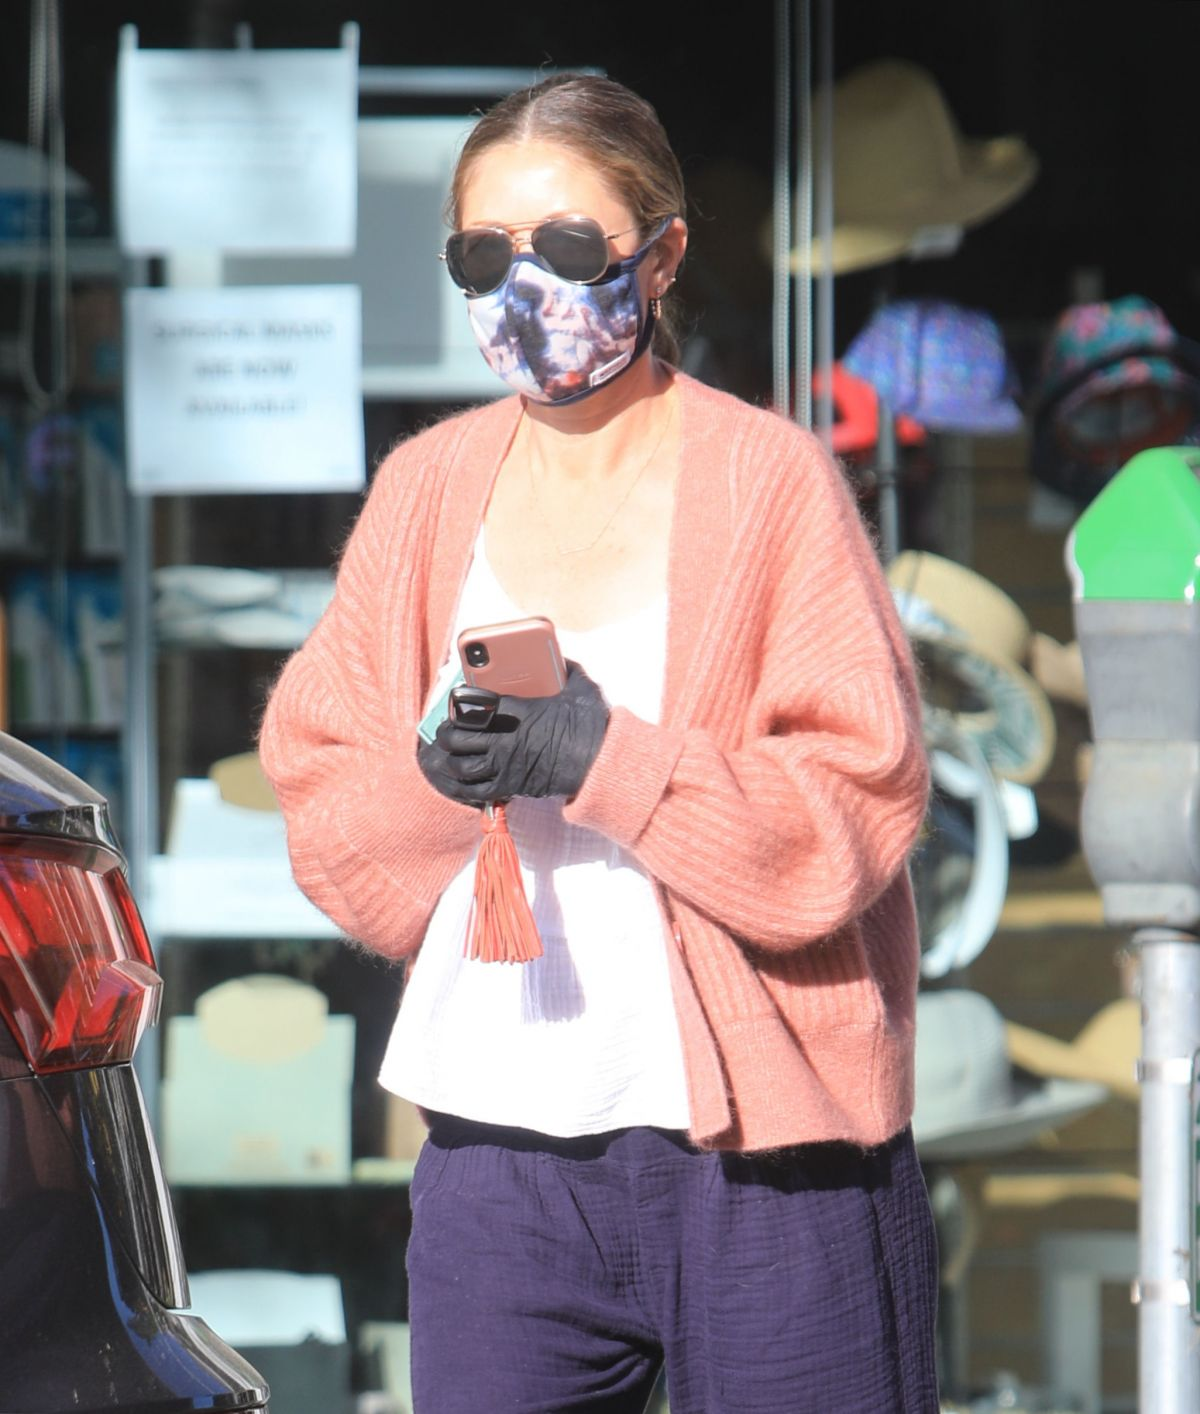 Rebecca Gayheart Wearing Mask and Gloves Out in Bevery Hills, 05.06.2020 12